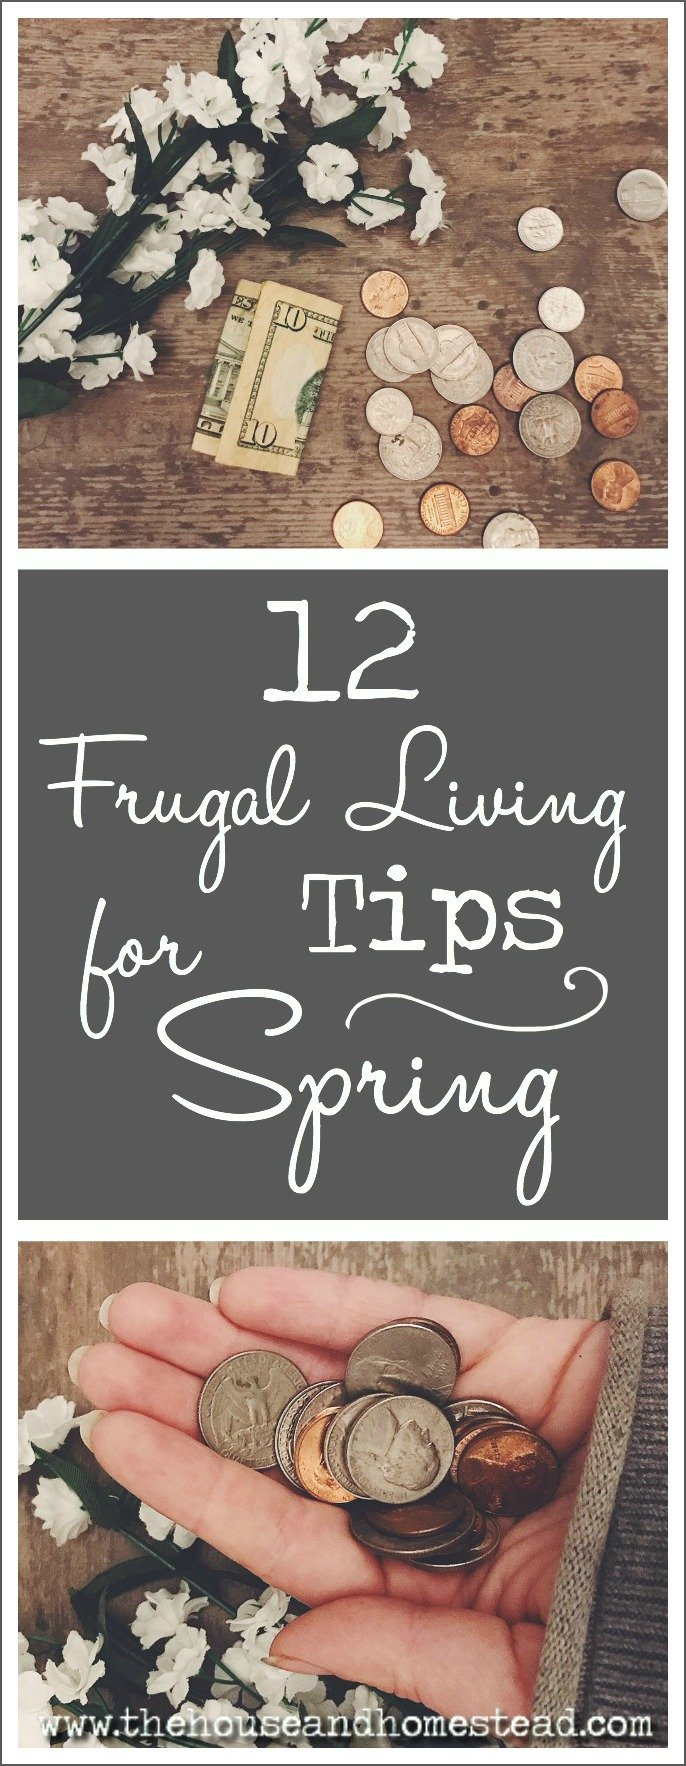 12 Frugal Living Tips for Spring | The House & Homestead